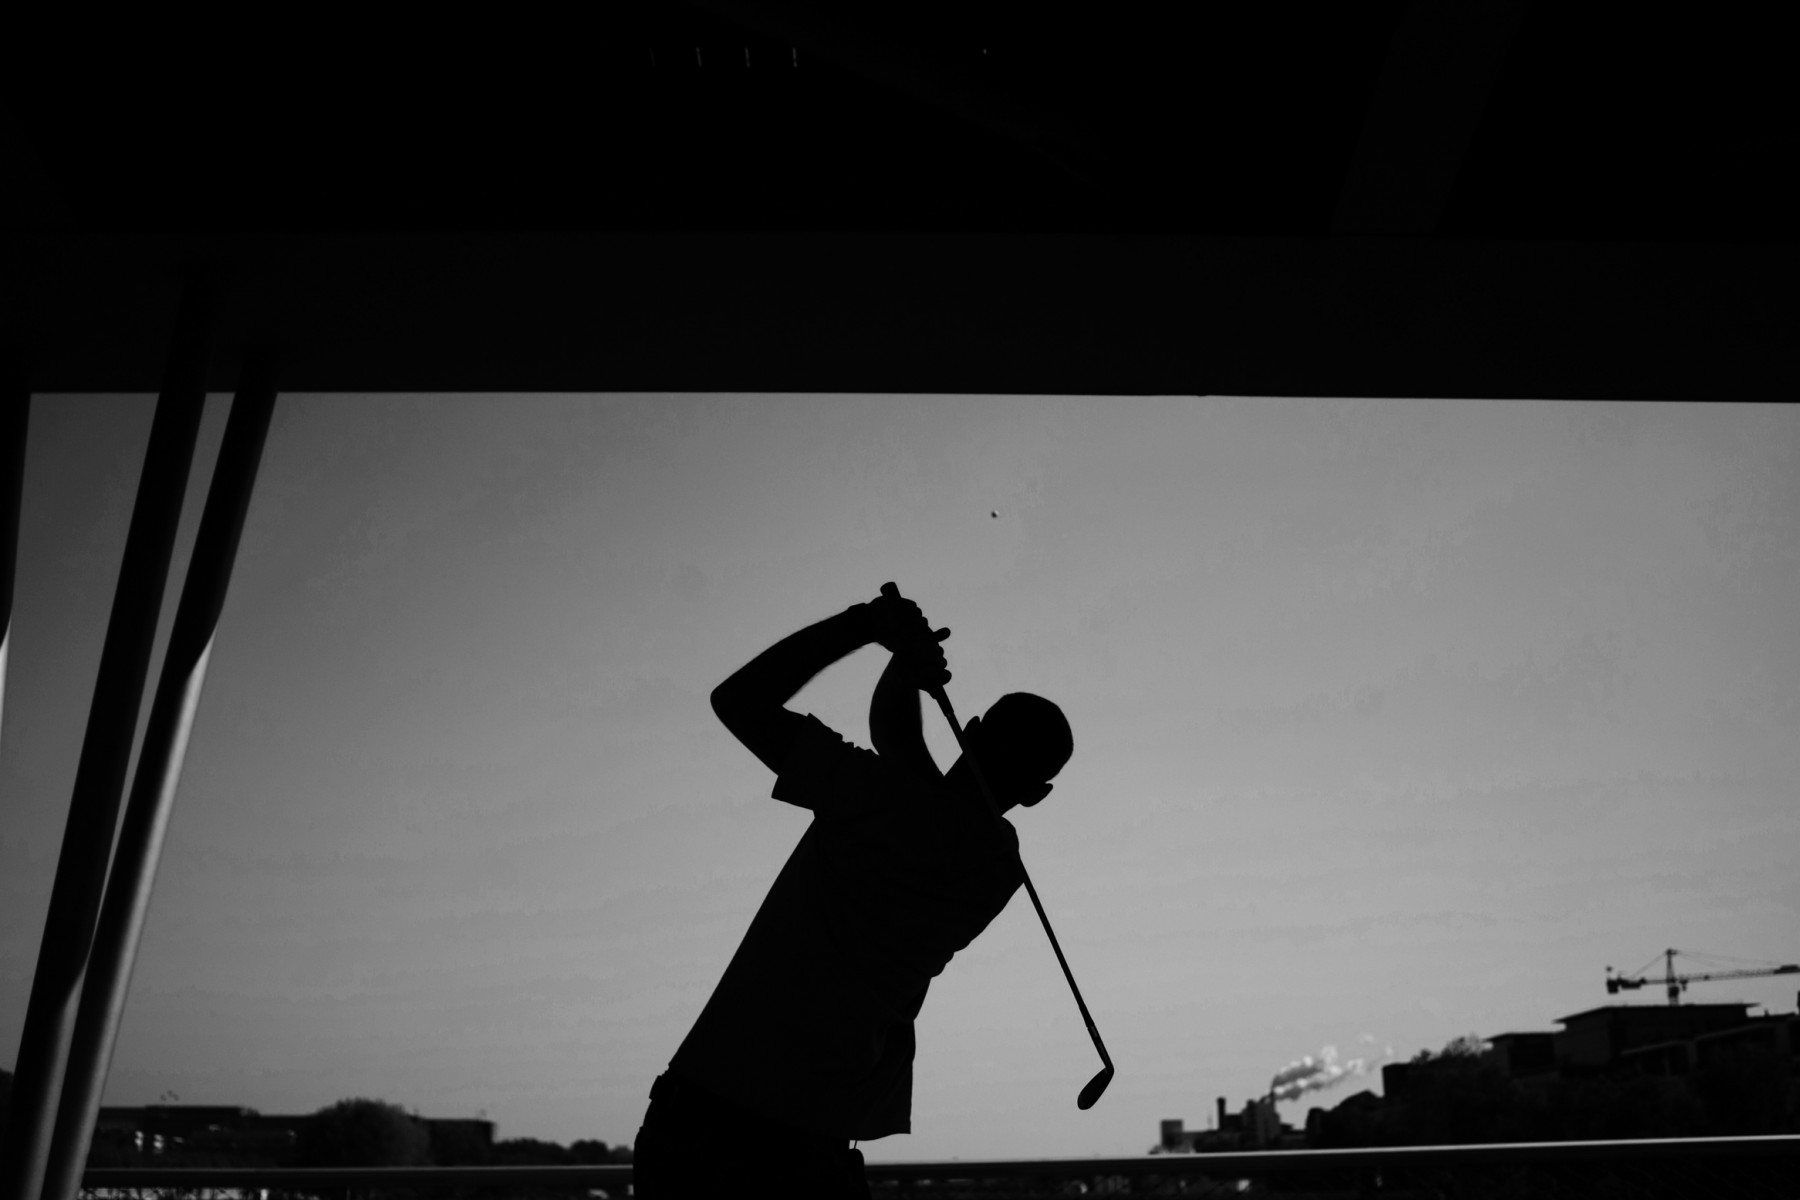 Let's Play, a transmedia project about urban golf practice - 19e-trou-©